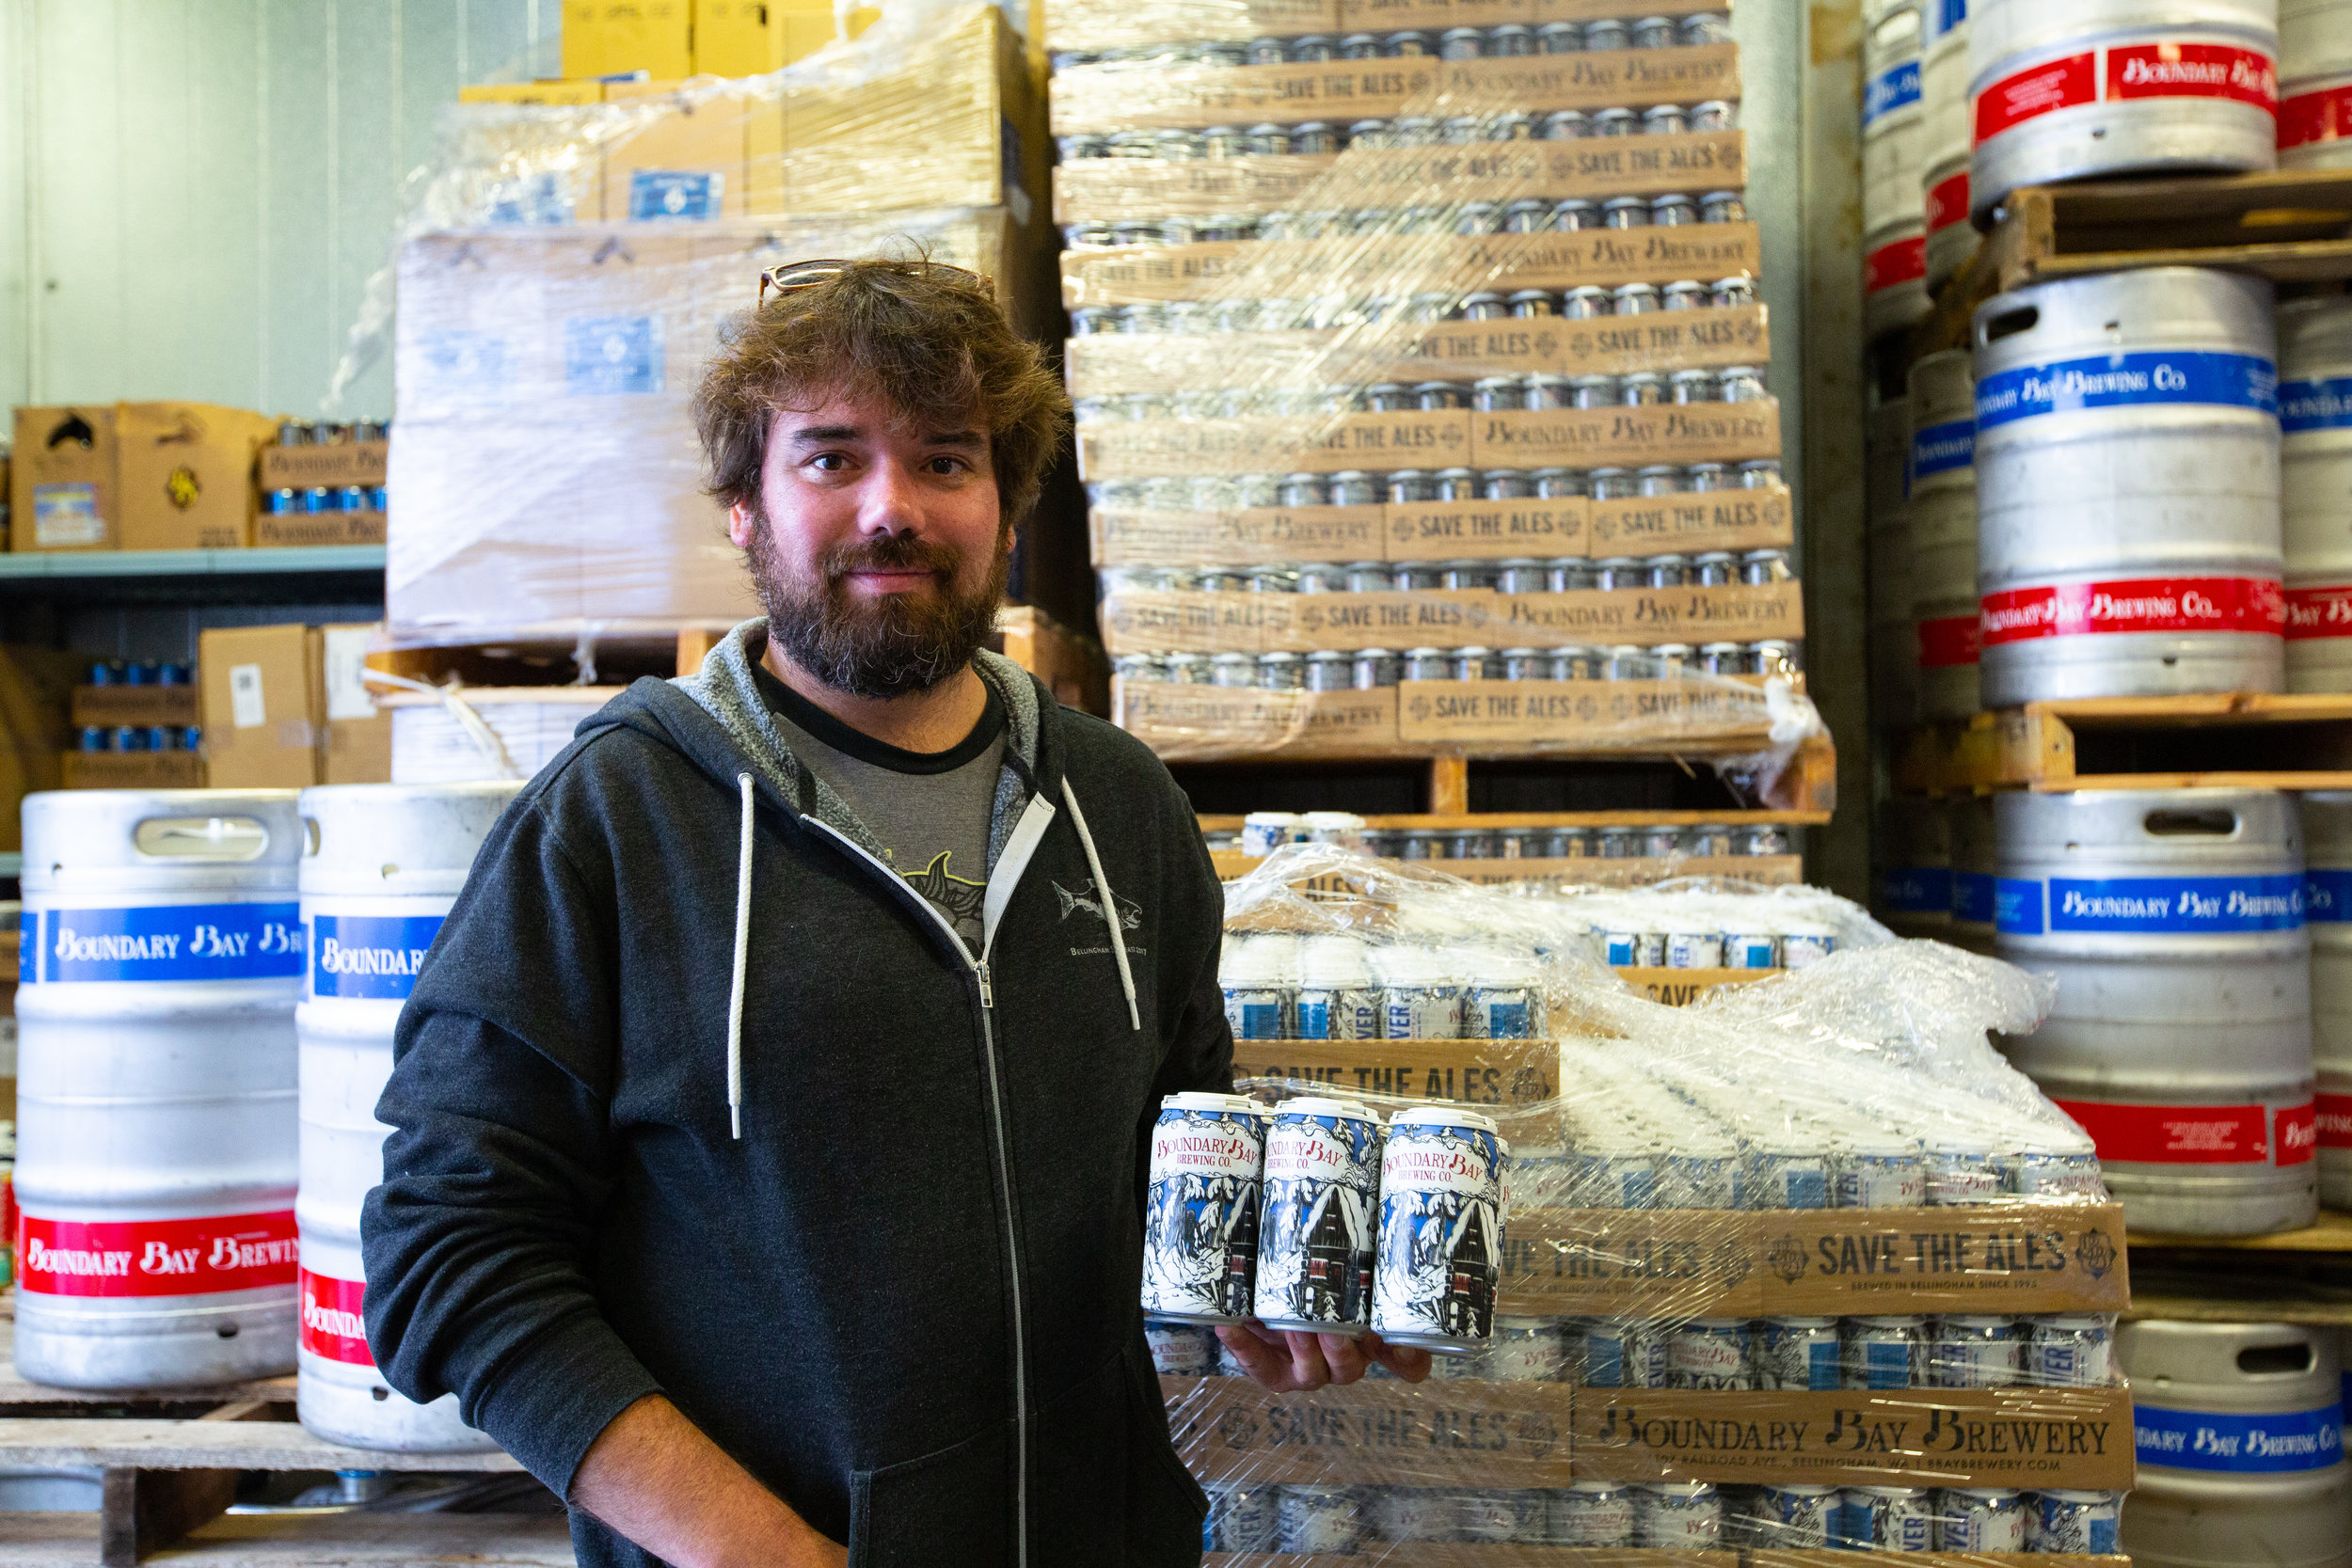 Artist, Evan Whitehead with Cabin Fever cans.